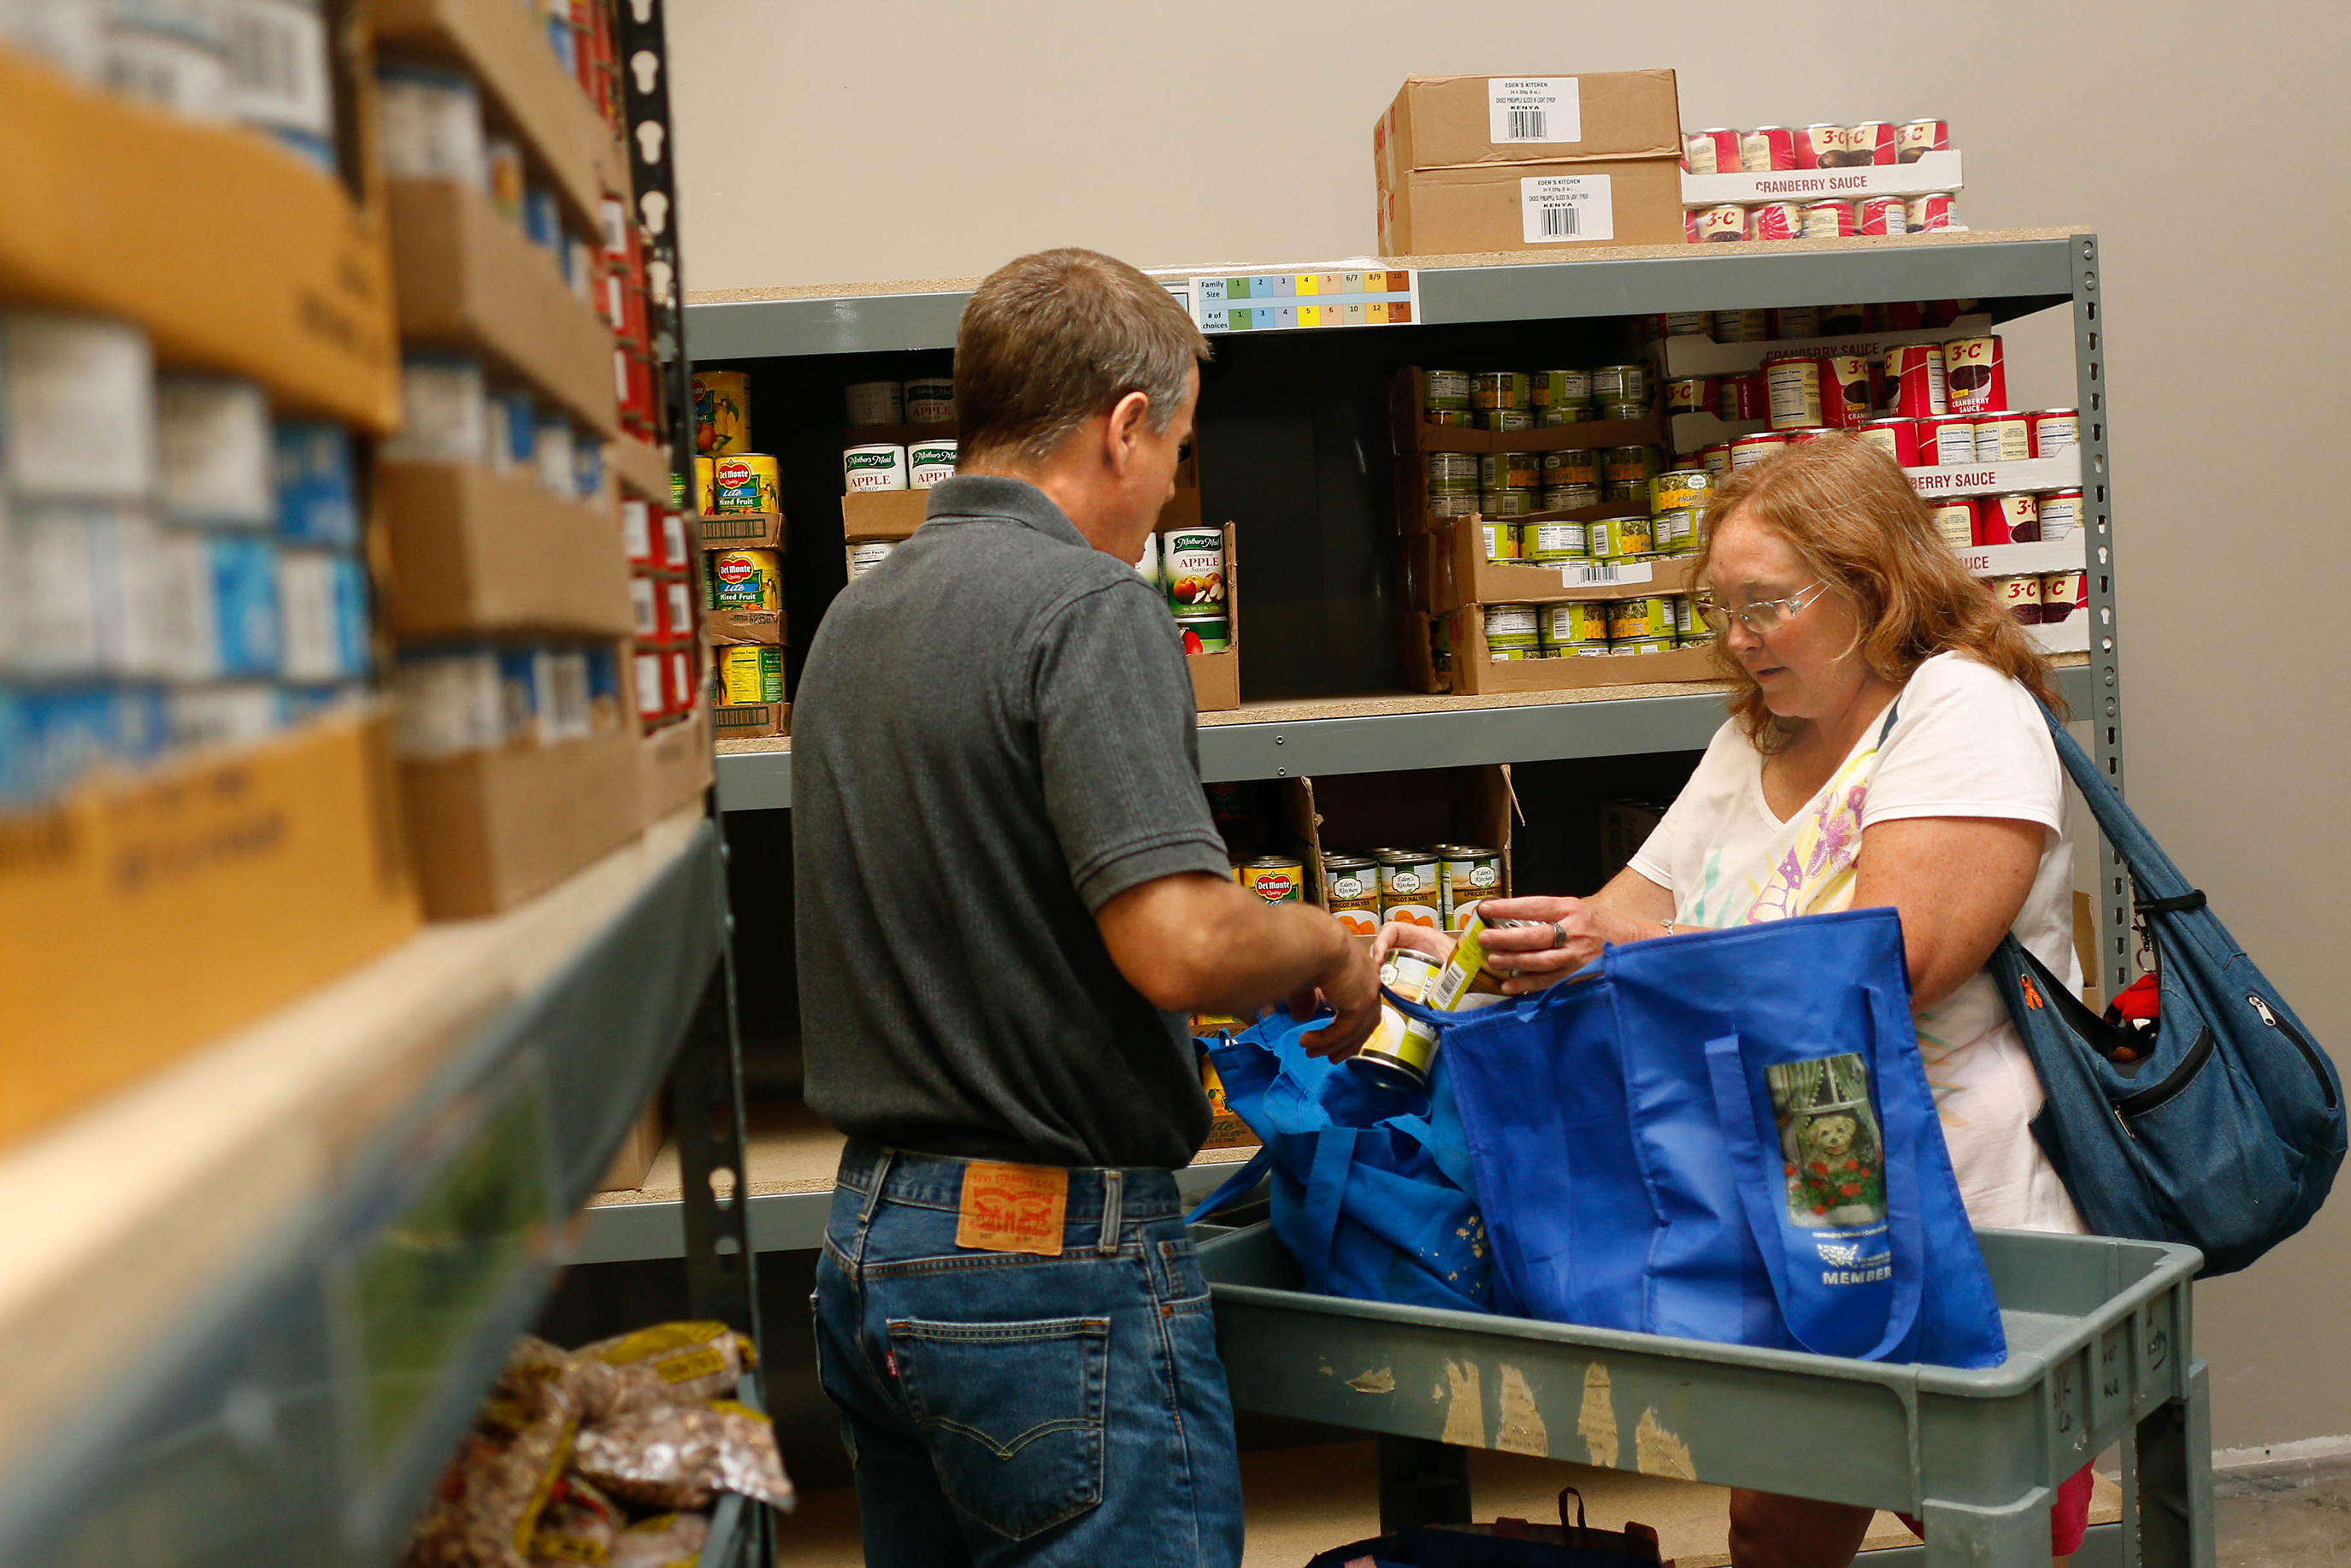 Dmarc food pantry network for Dmarc food pantry des moines ia